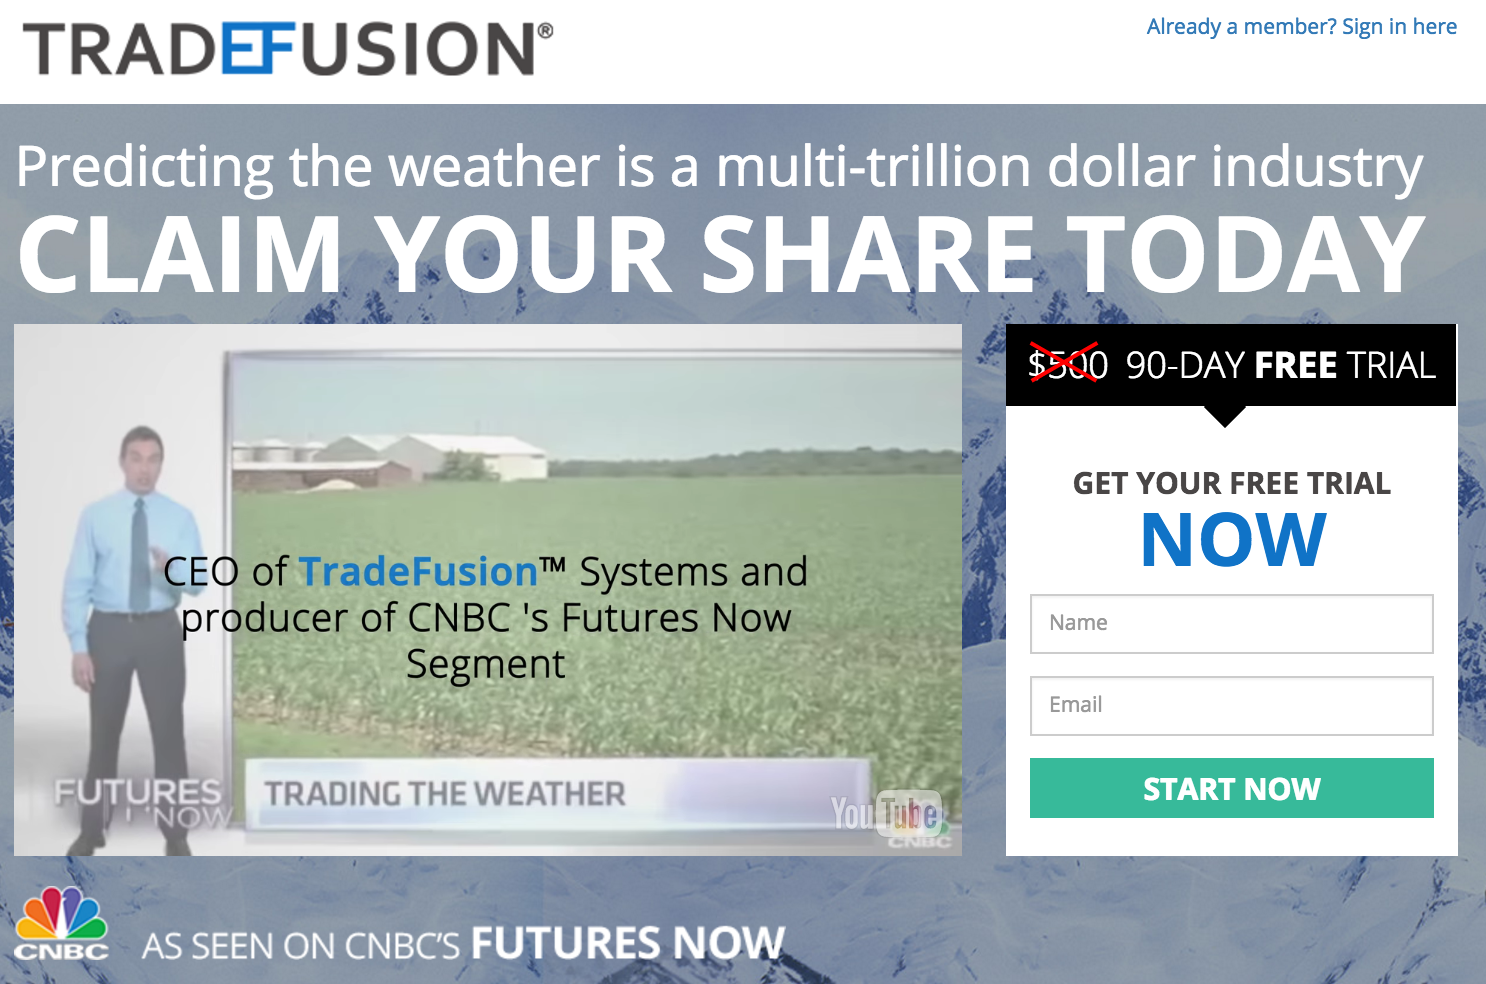 Trade Fusion Software Review - Featured on CNBC?